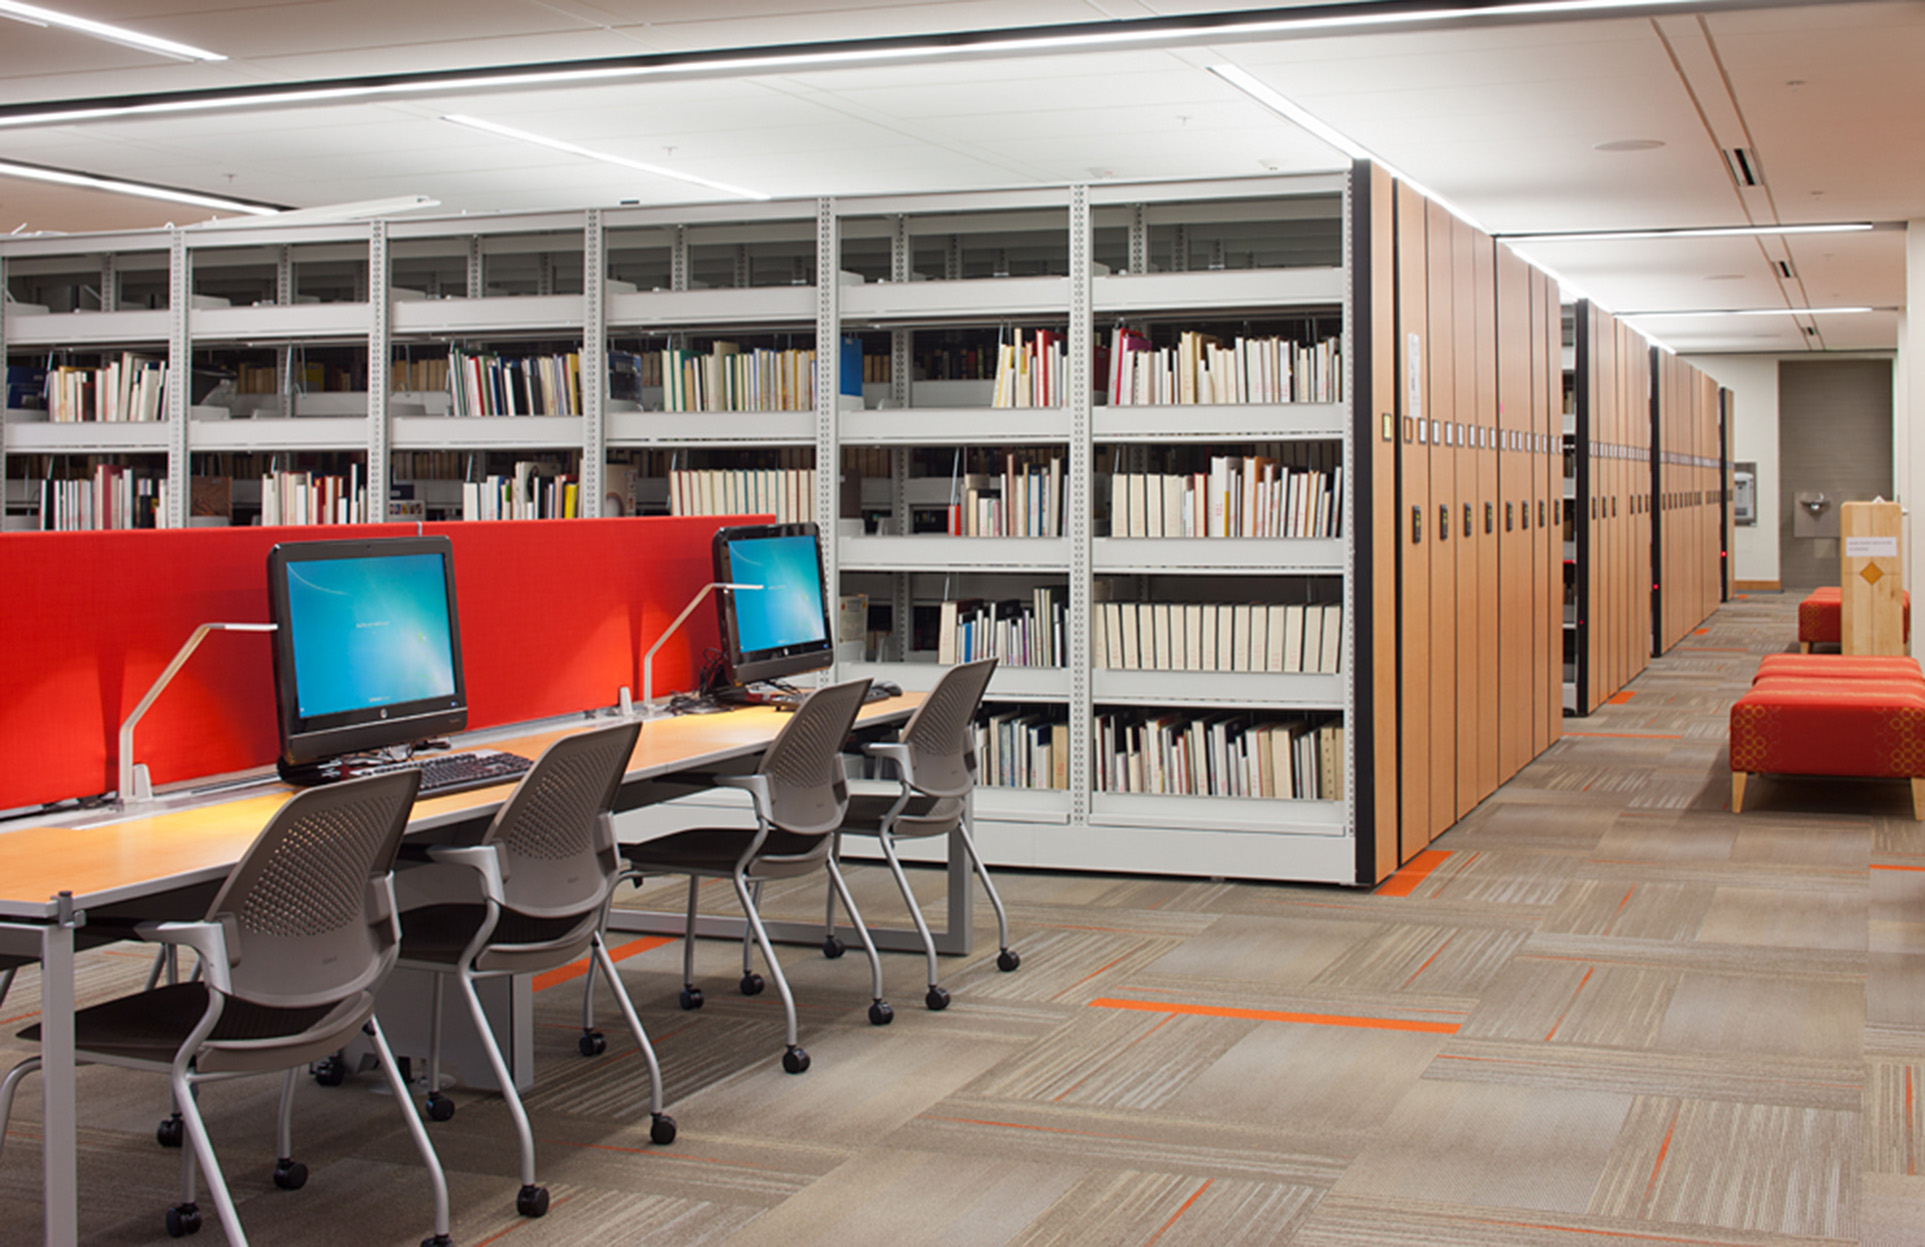 Library Storage - High-density compact library shelving